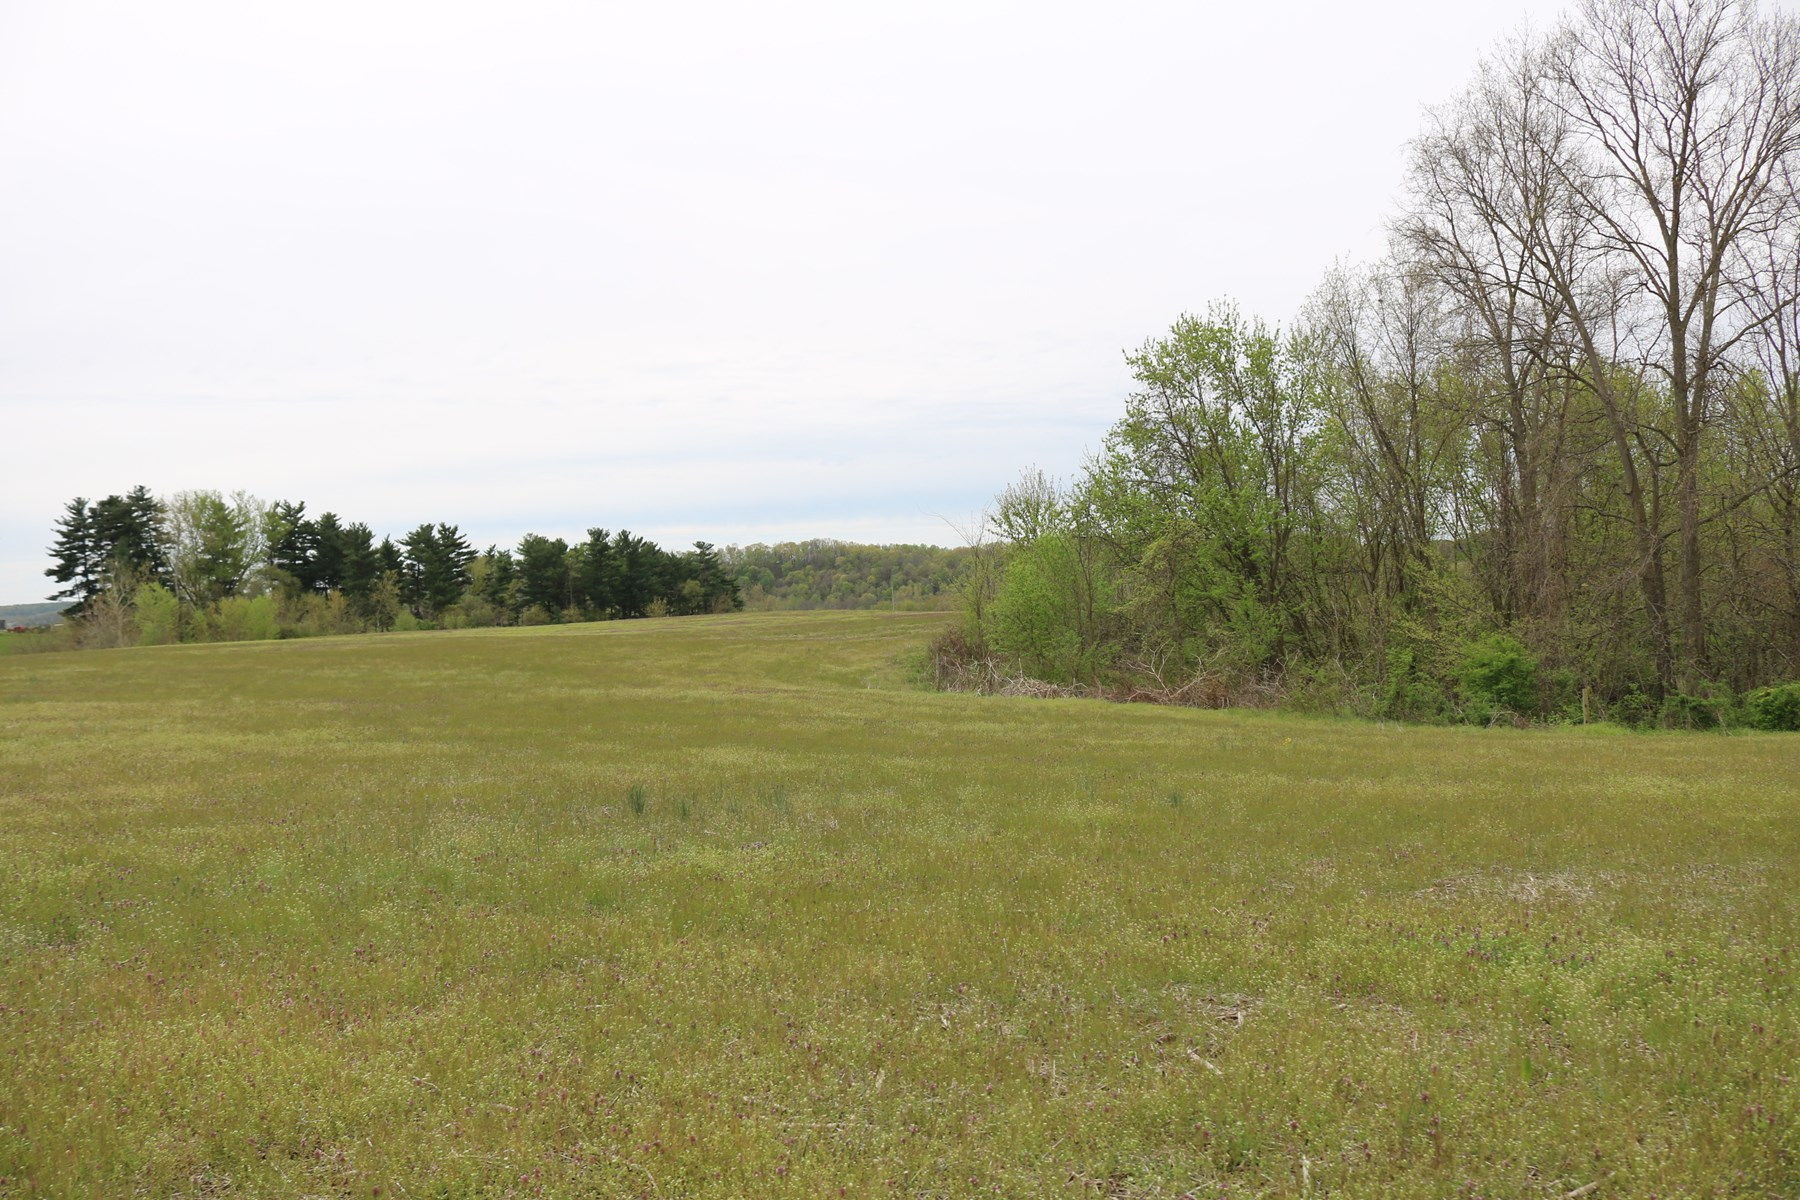 Tract 8 | 65 +/- Acres | Tillable/Wooded